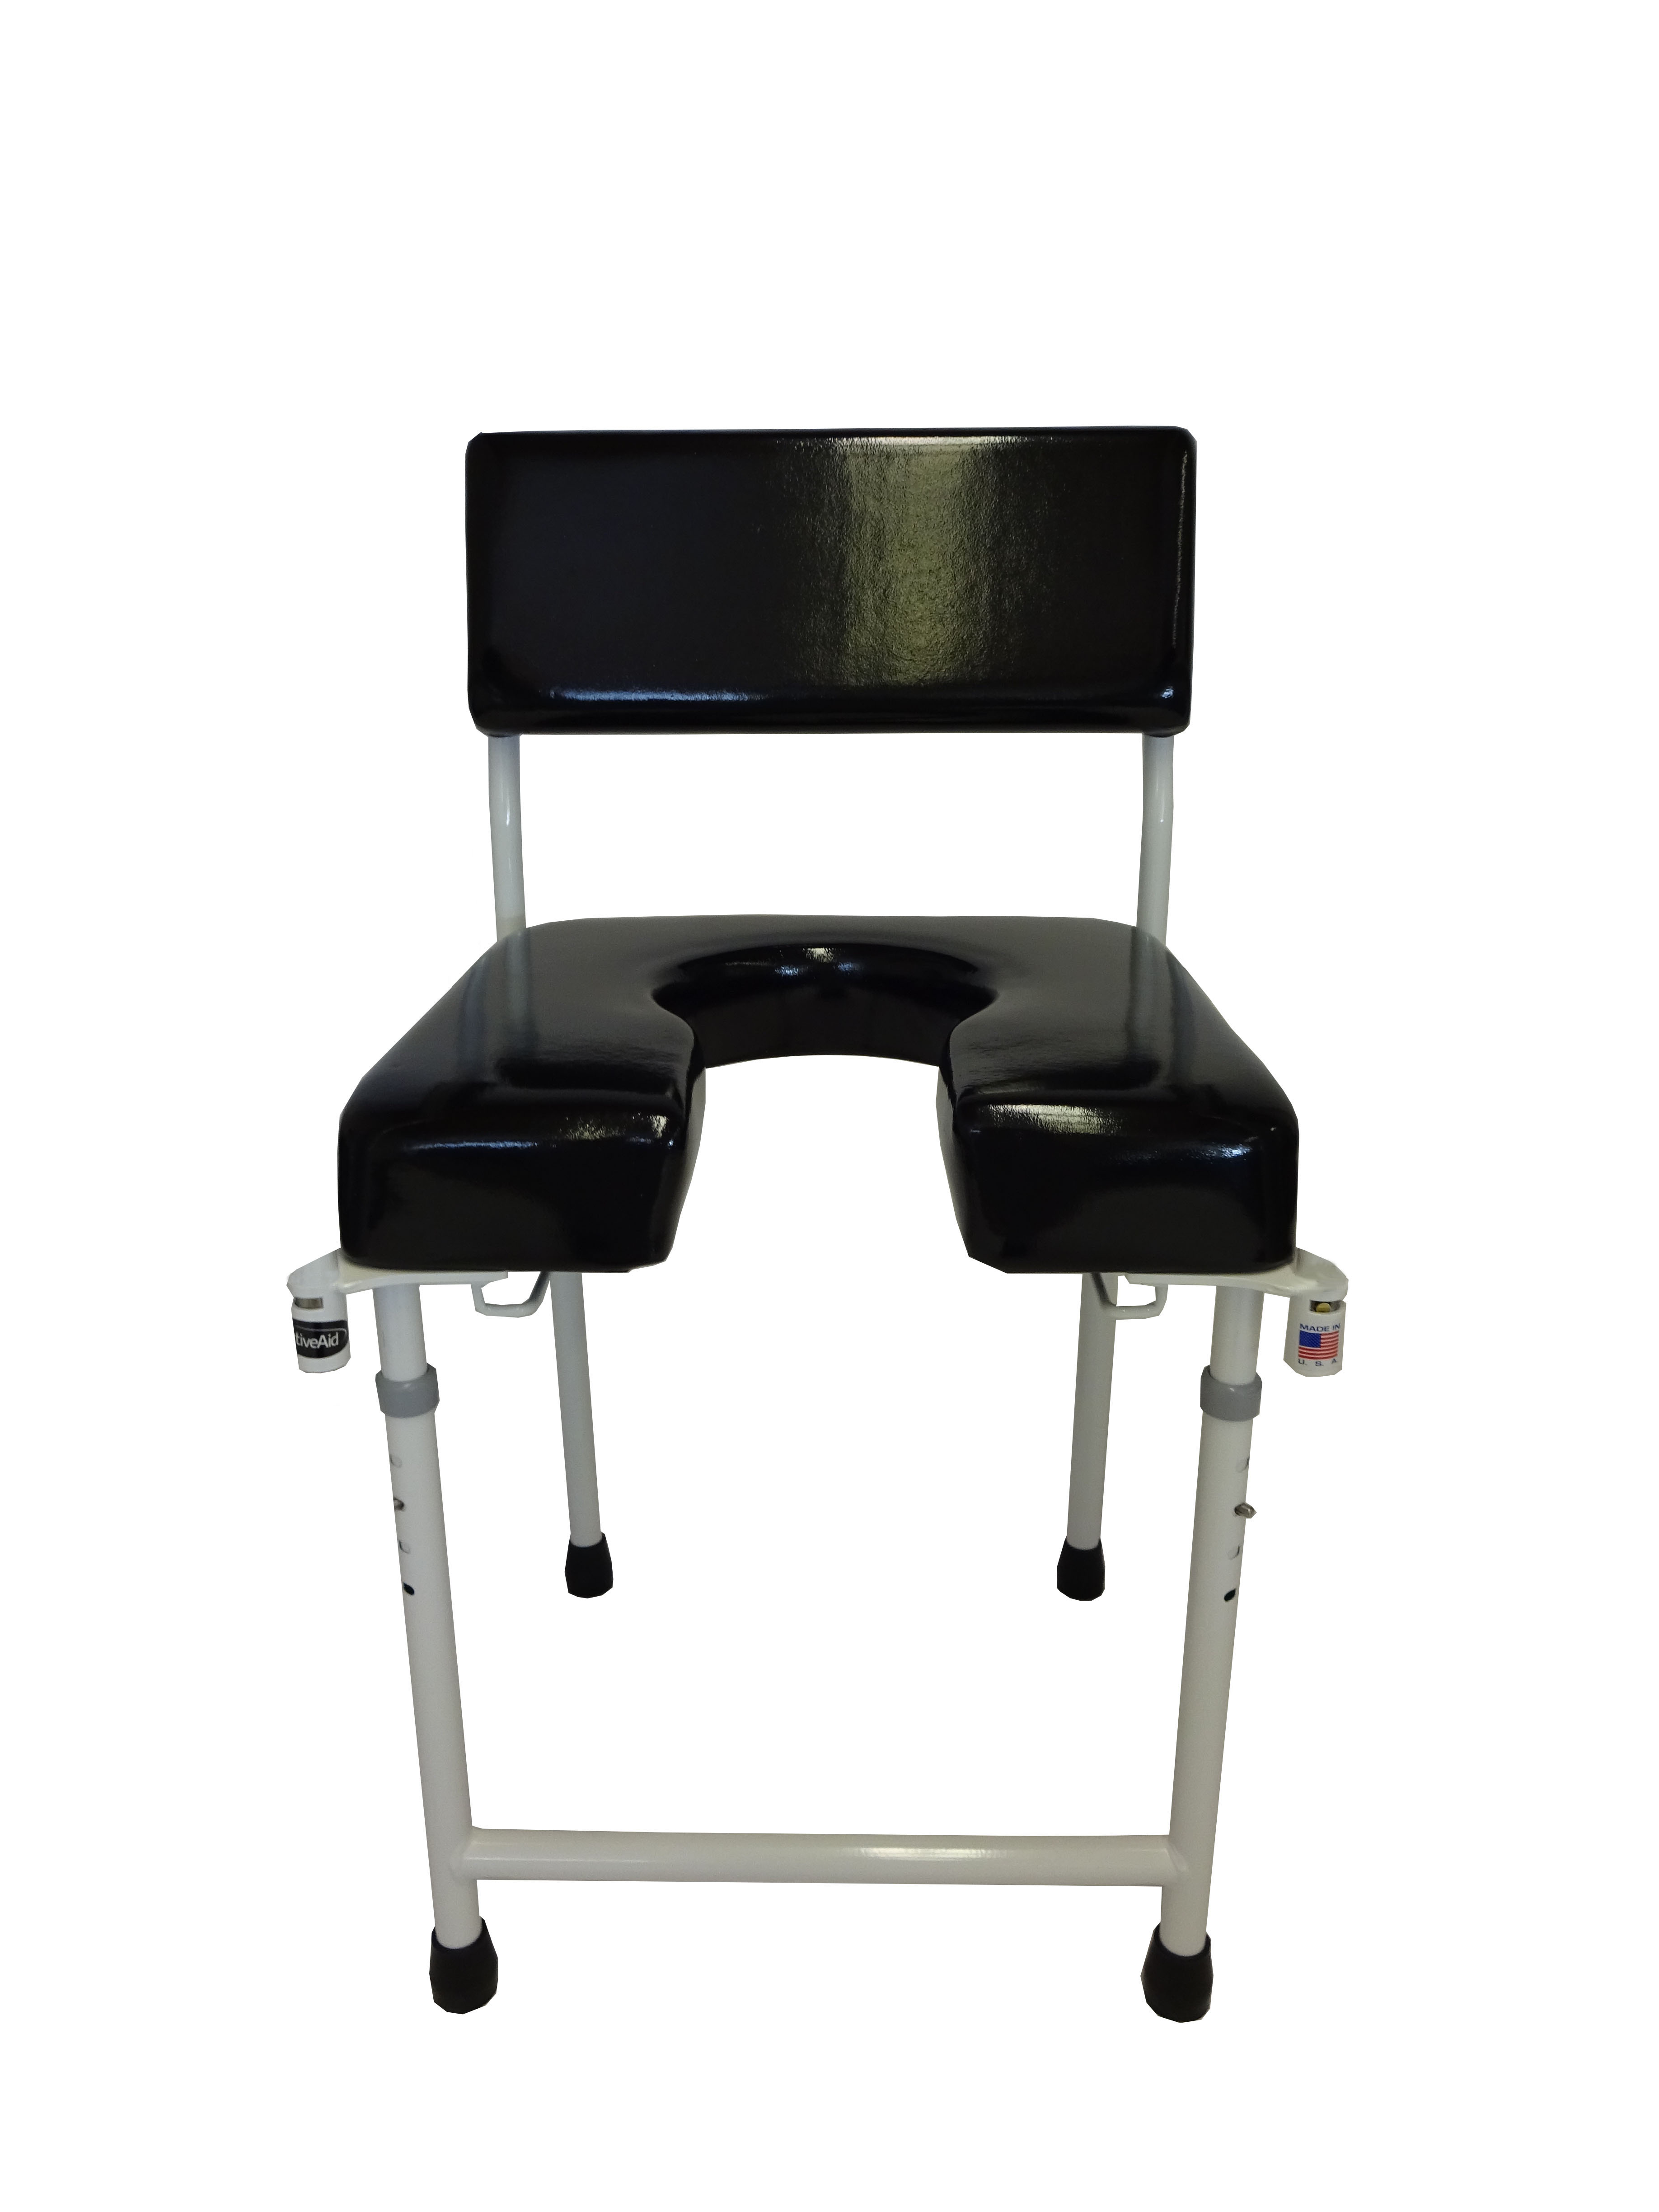 Awesome Activeaid 202 Bathroom Assist Chair Caraccident5 Cool Chair Designs And Ideas Caraccident5Info